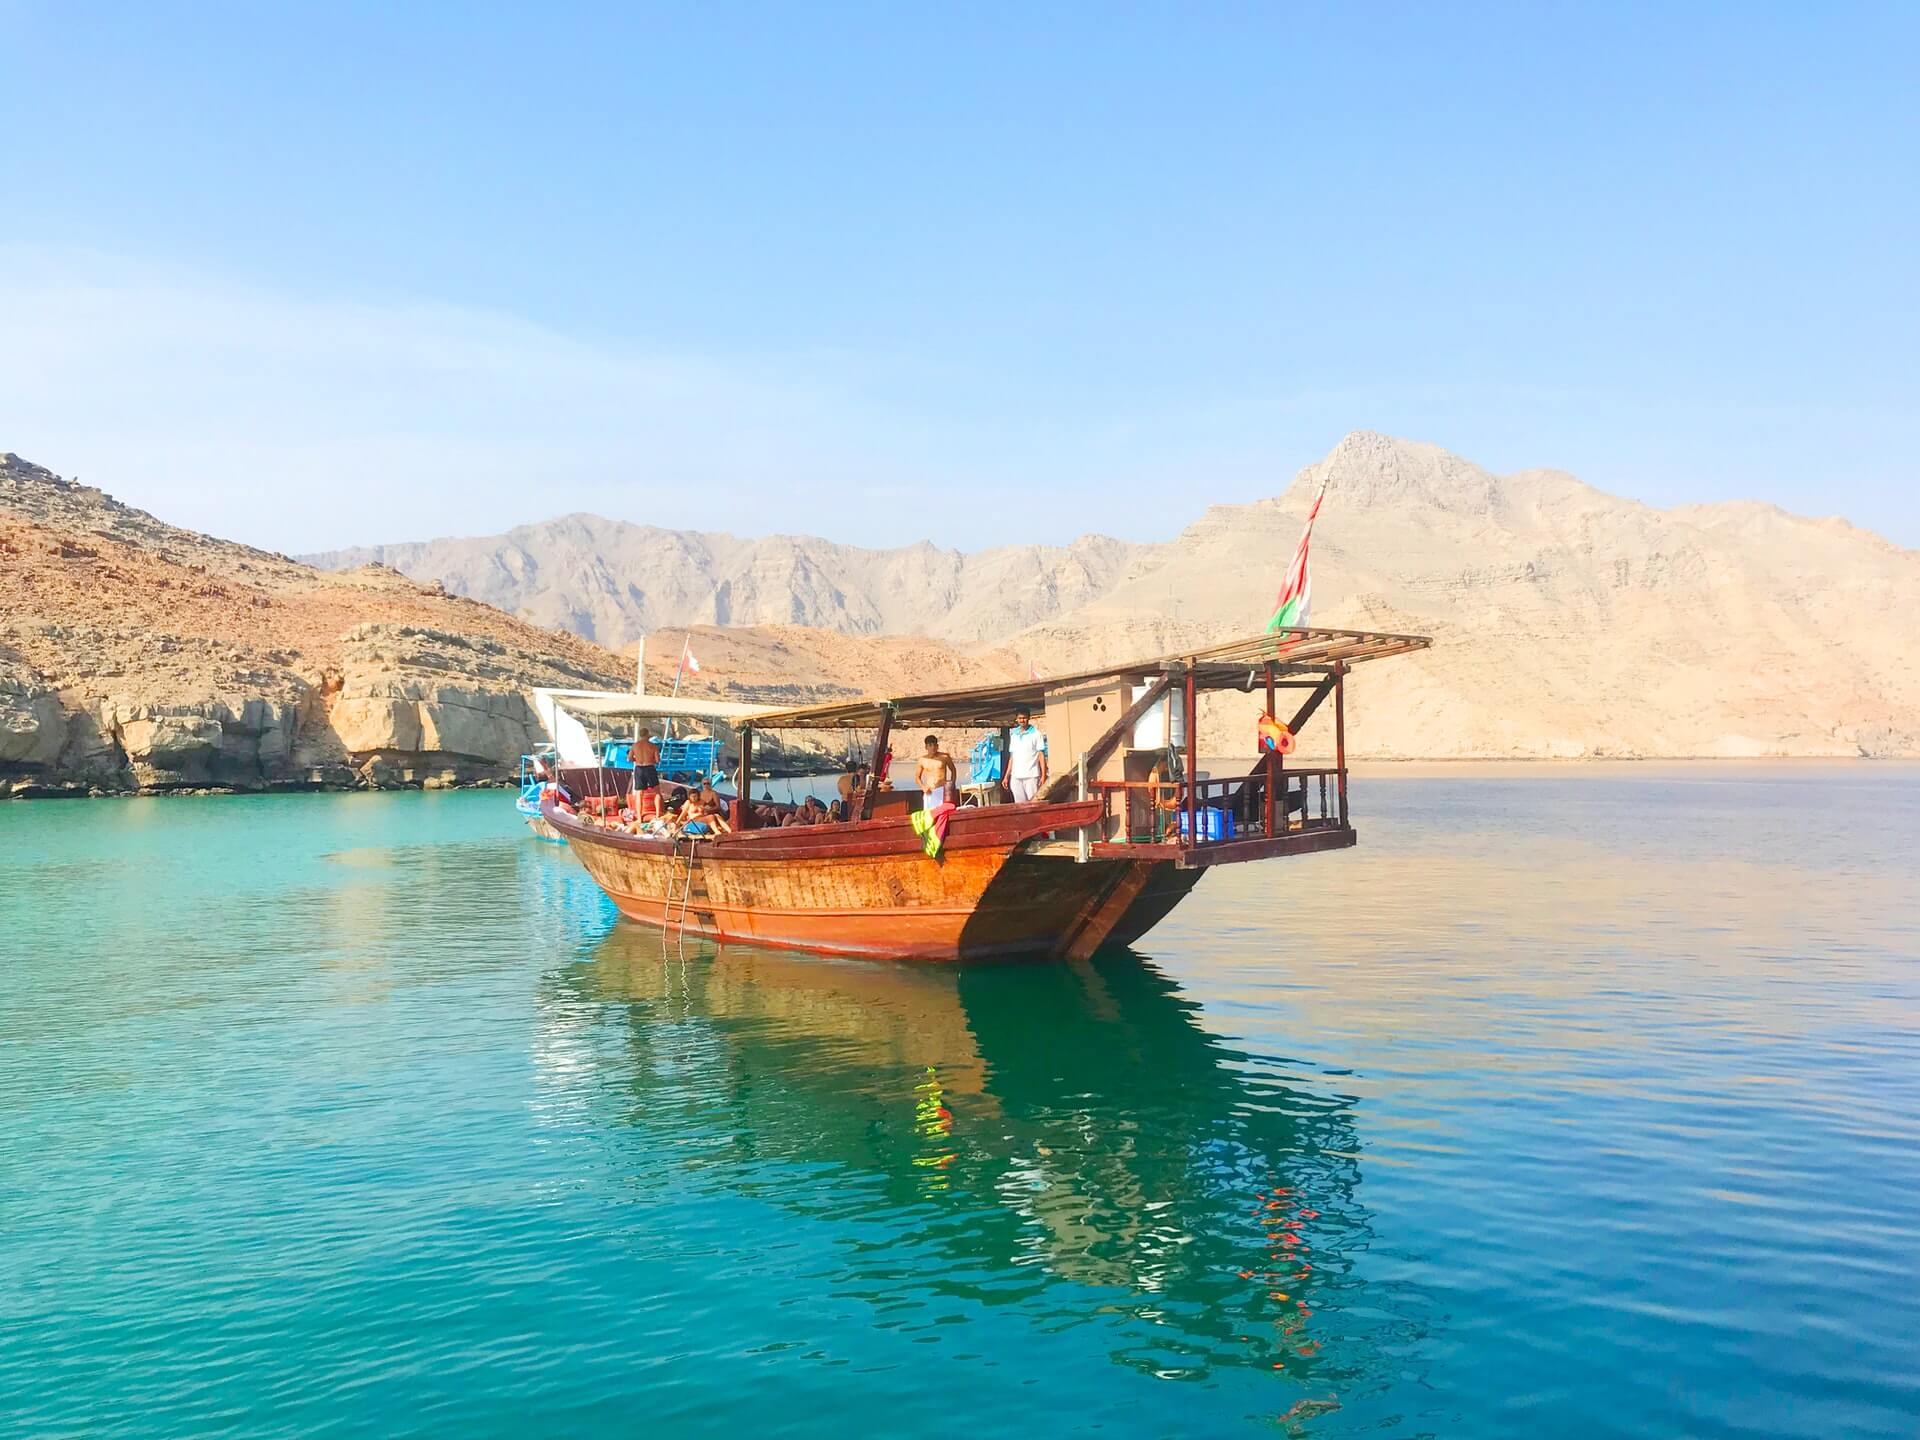 a traditional dhow boat on the blue waters of musandam in oman